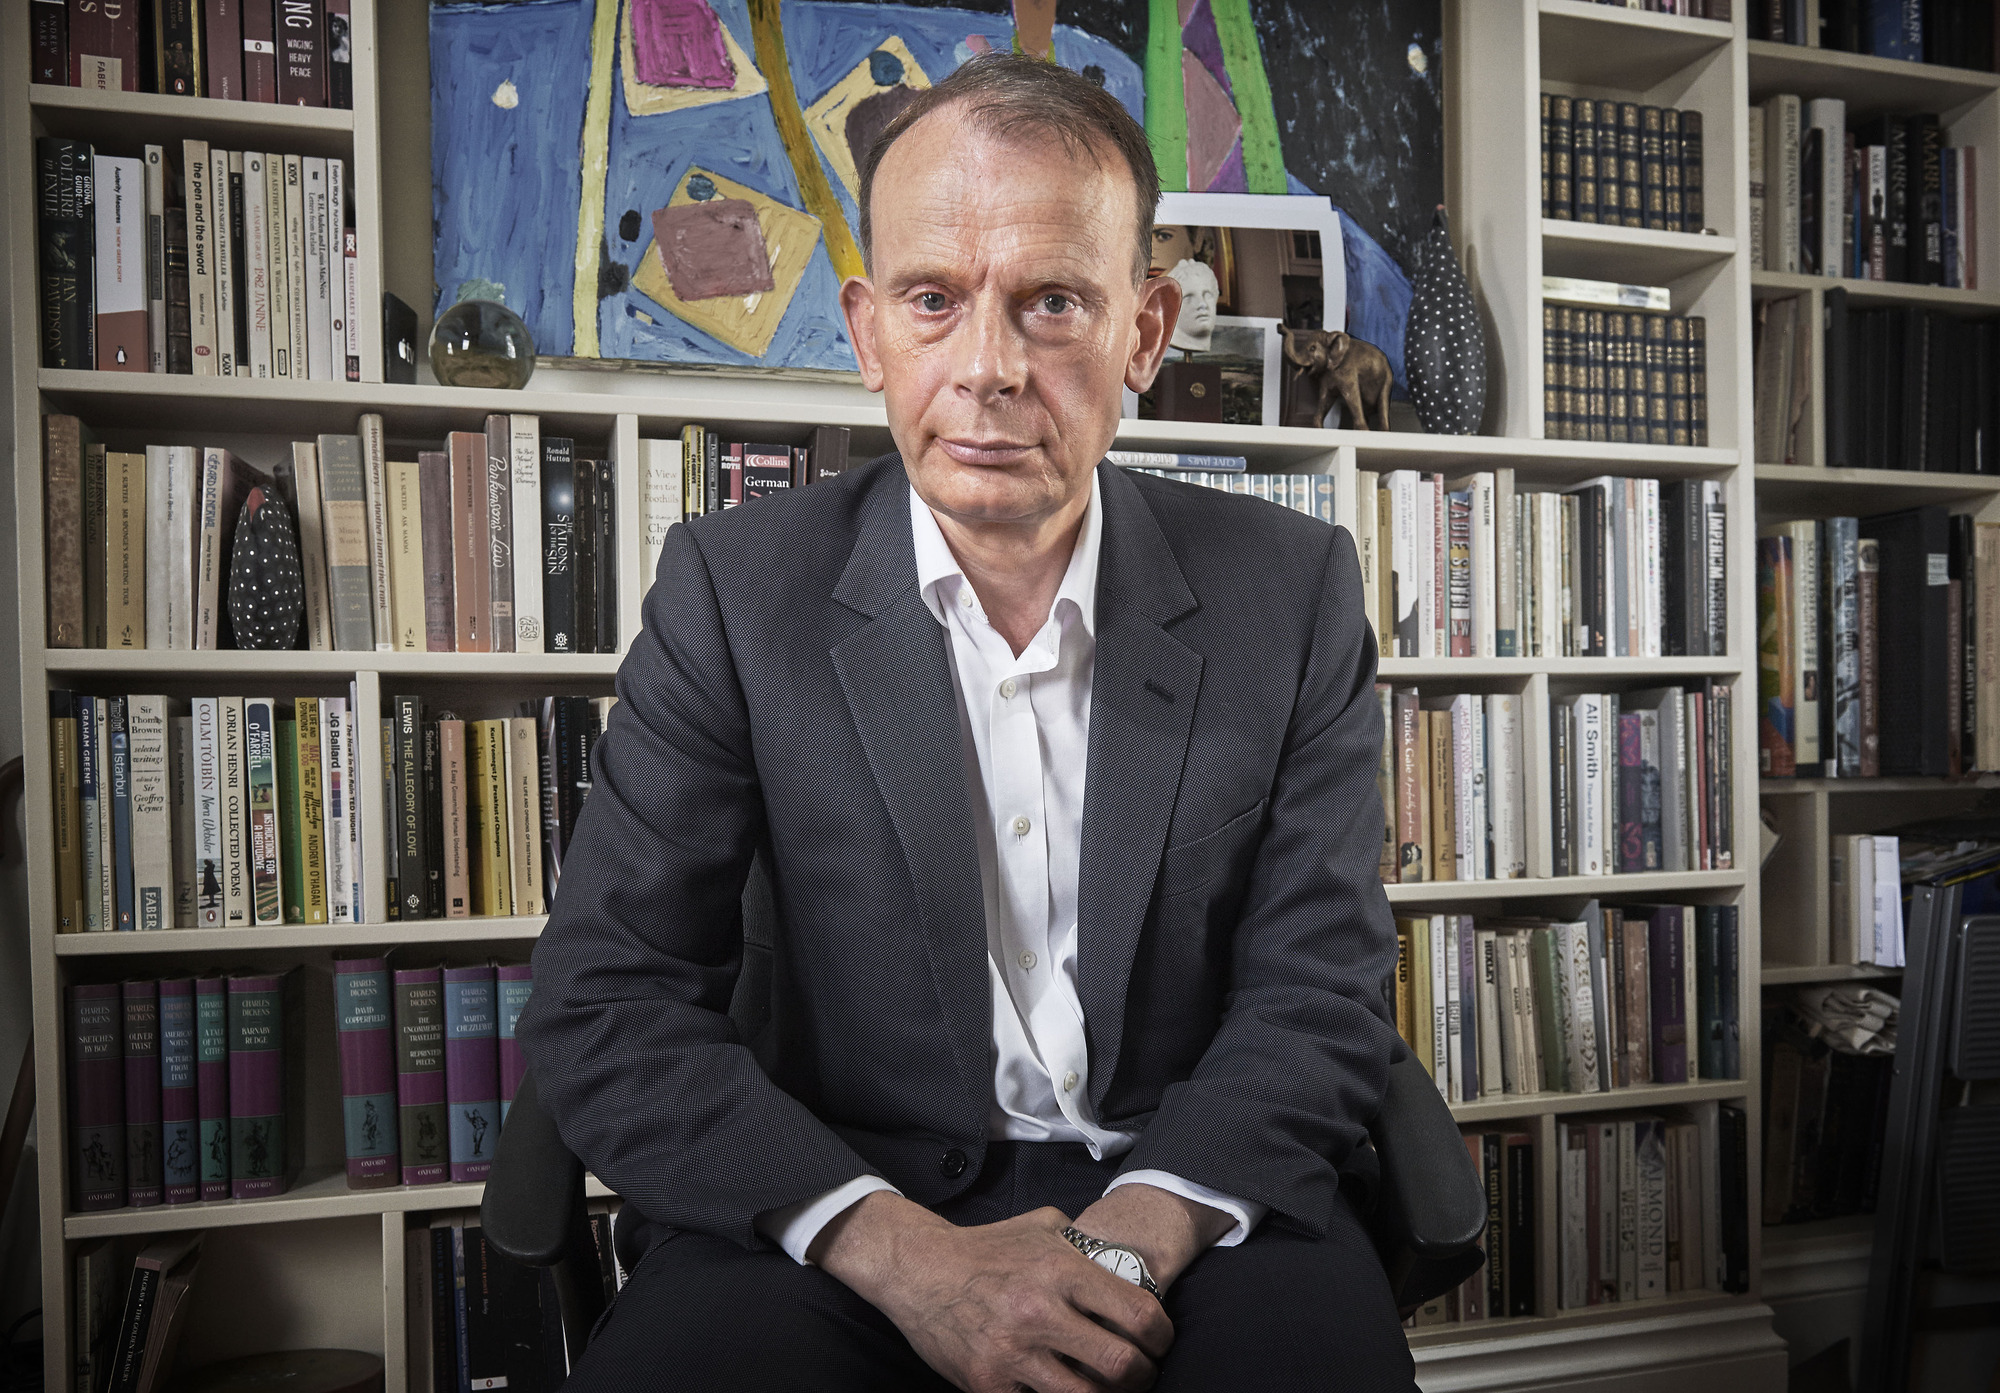 A documentary on Marr's recovery is set to air on BBC2